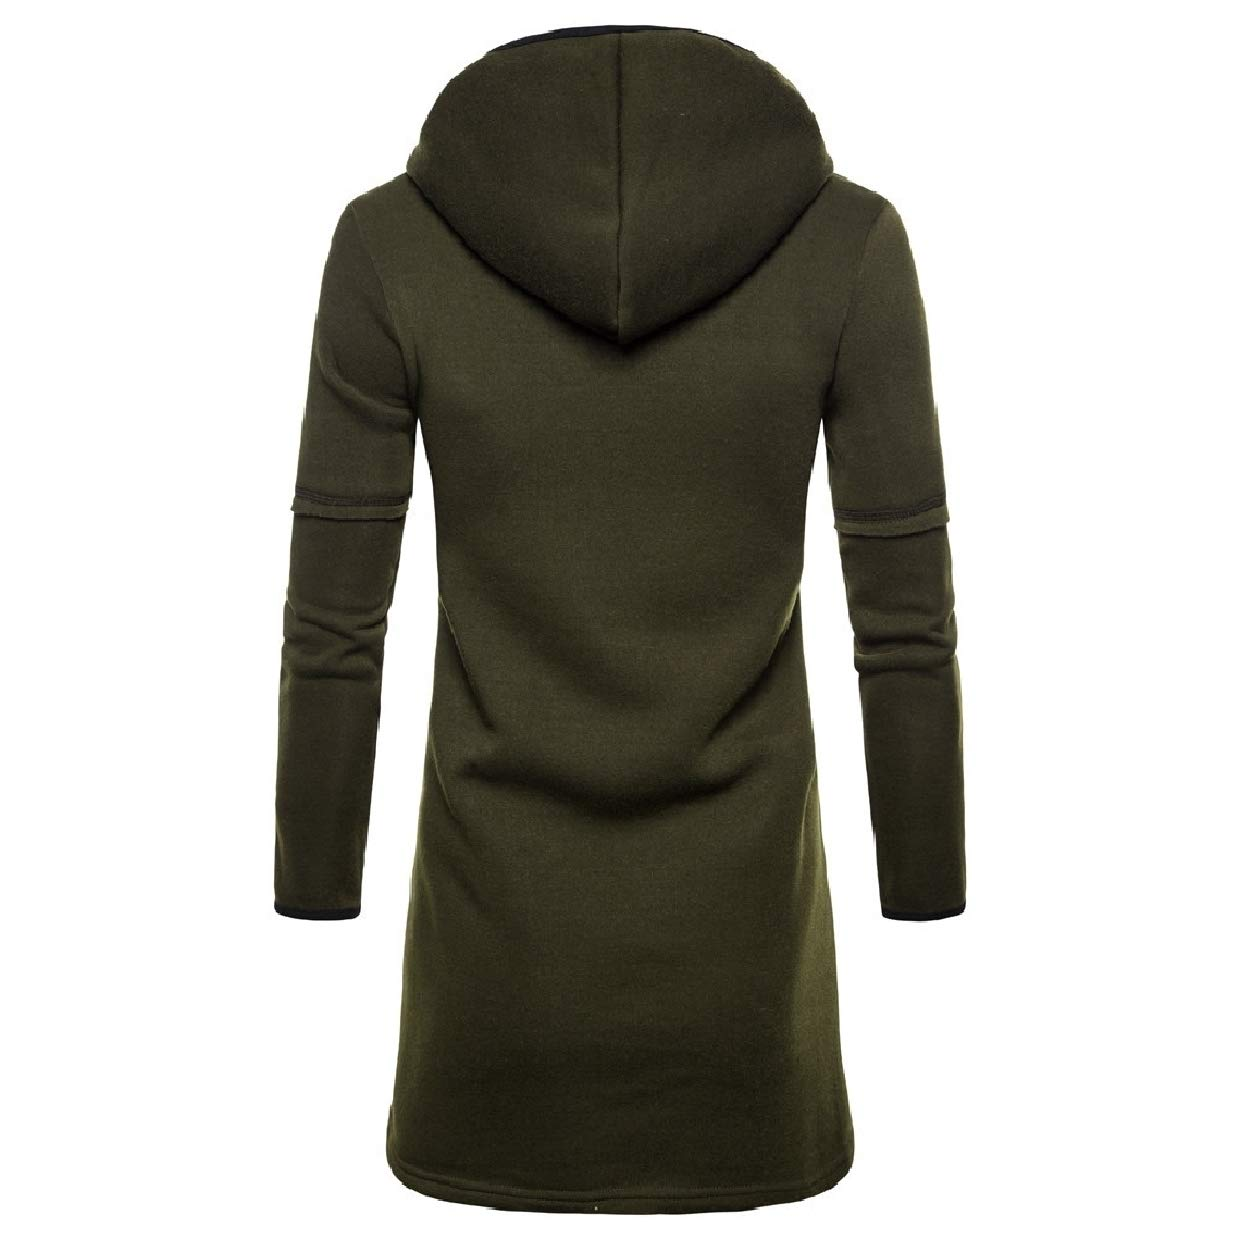 Abetteric Mens Slim Fitting Contrast Hood Open-Front with Pockets Cardigan